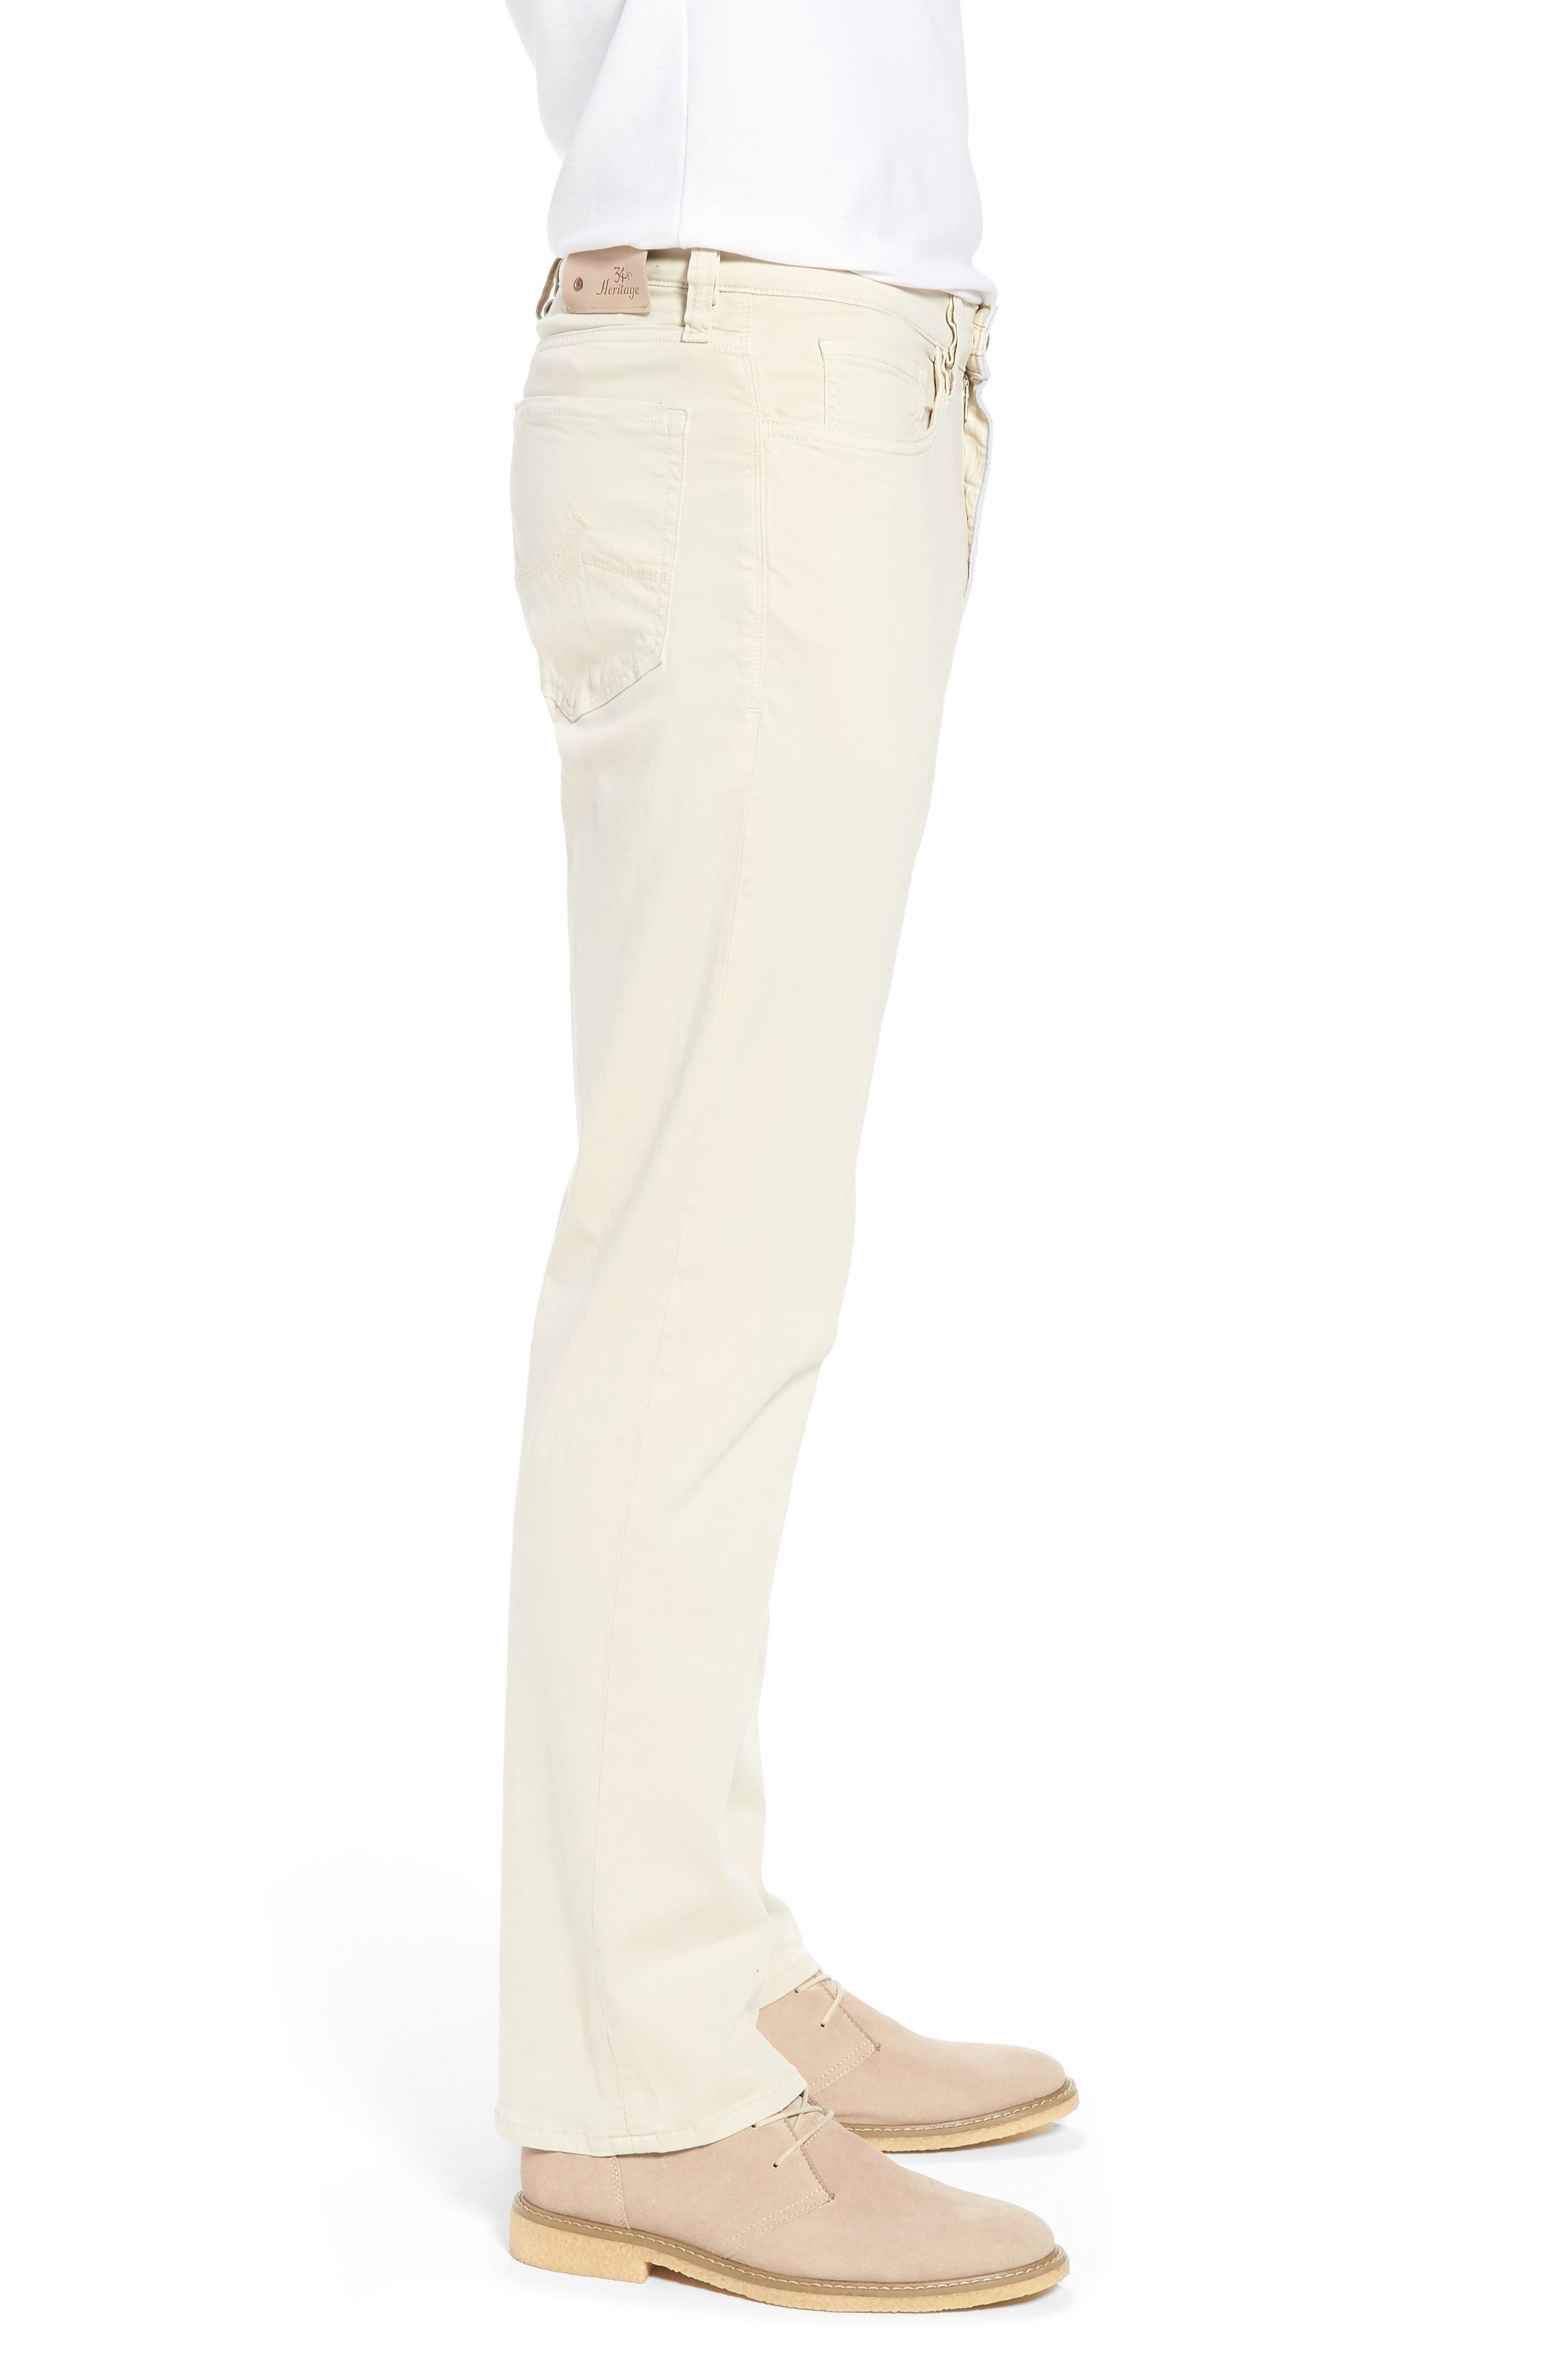 Charisma Relaxed Fit Jeans,                             Alternate thumbnail 3, color,                             Bone Twill